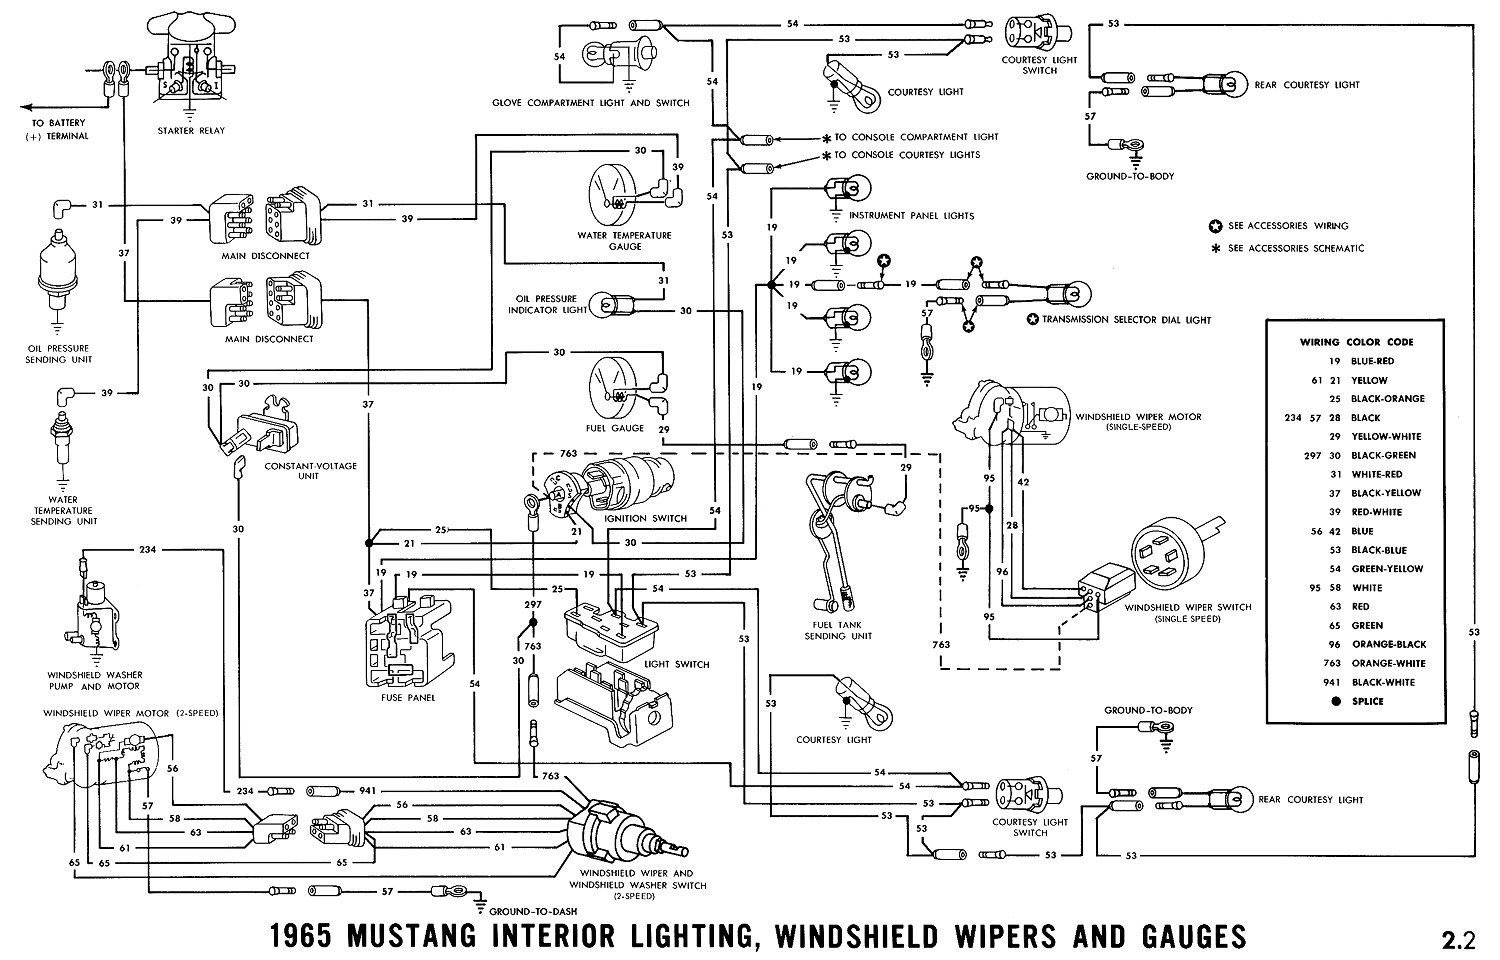 1965g 1965 mustang wiring diagrams average joe restoration 65 mustang turn signal switch wiring diagram at panicattacktreatment.co